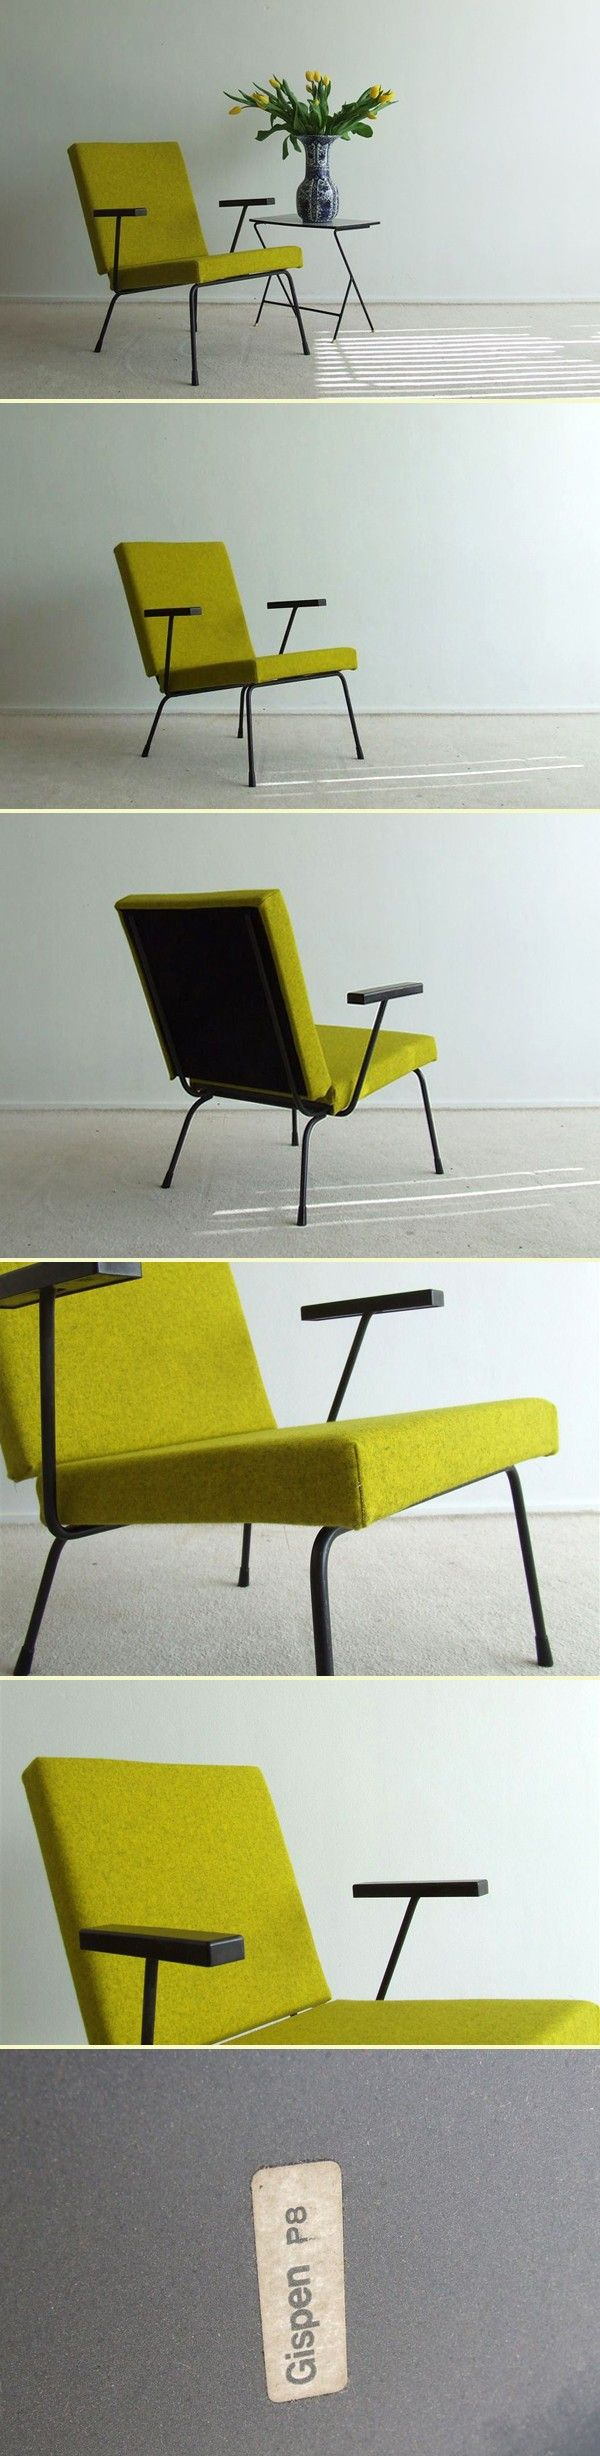 Lounge chair by Wim Rietveld for Gispen (1531)